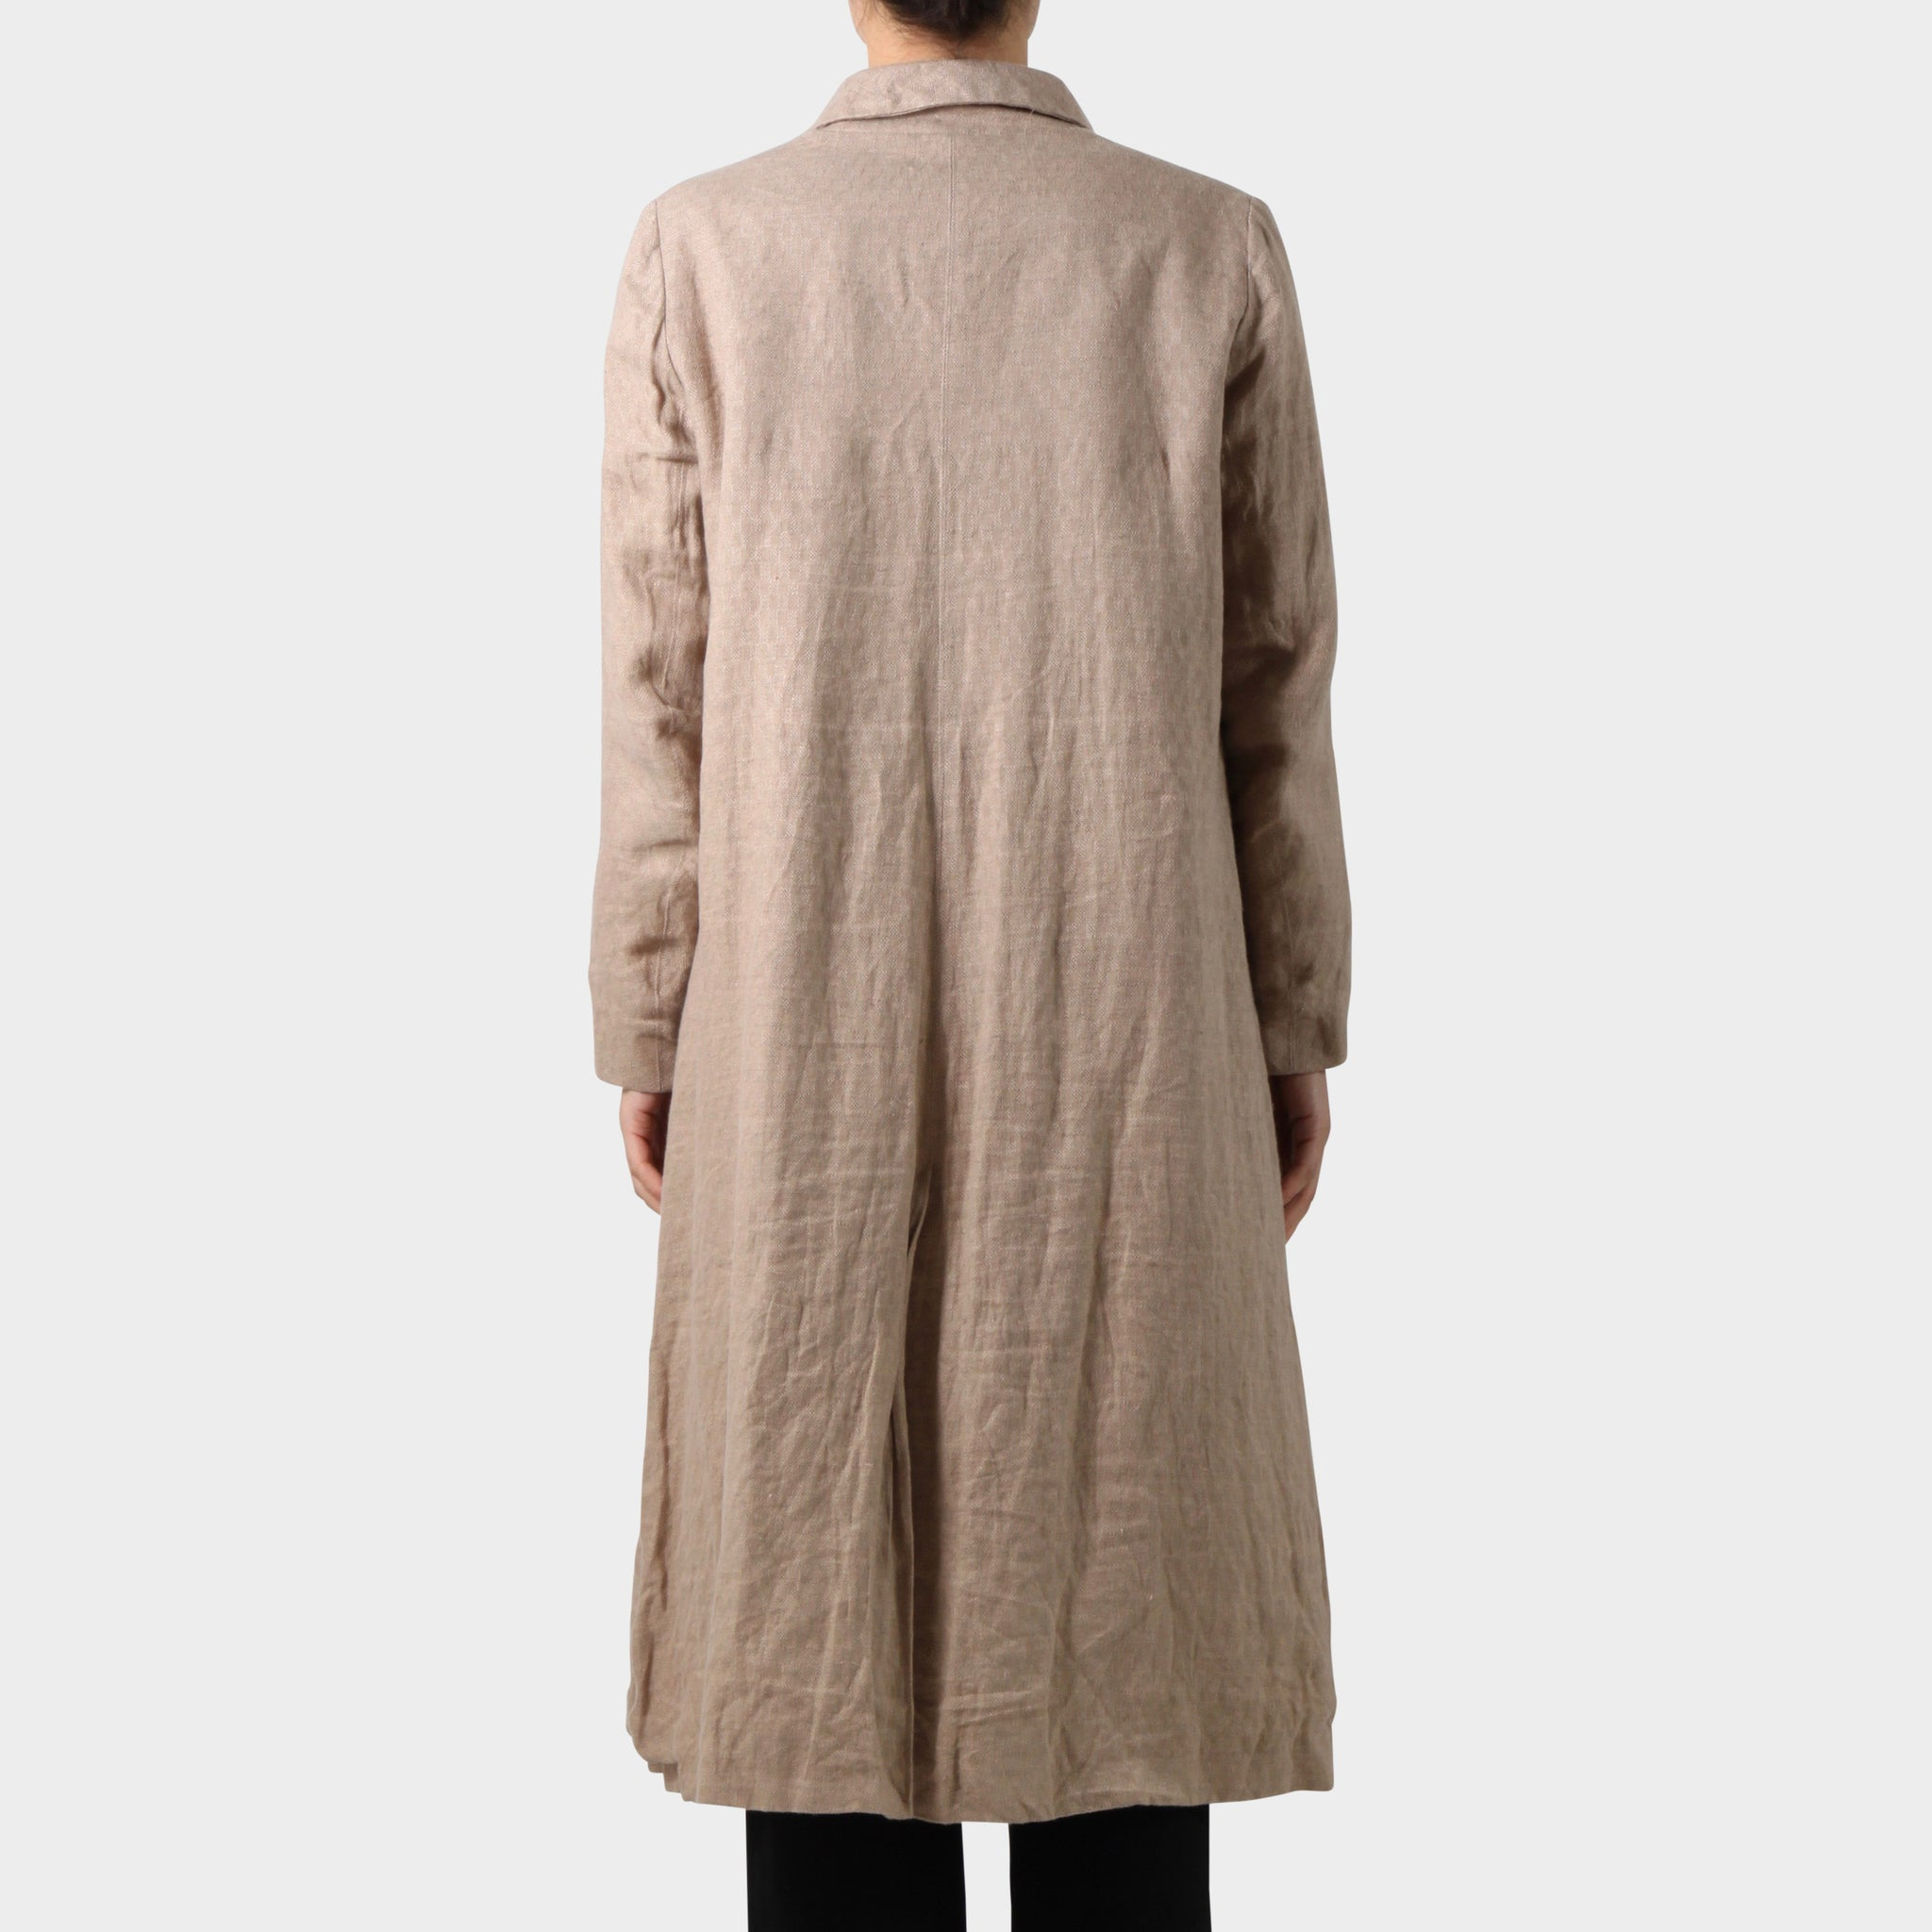 Paul Harnden Shoemakers Pink Linen Mayfair Coat